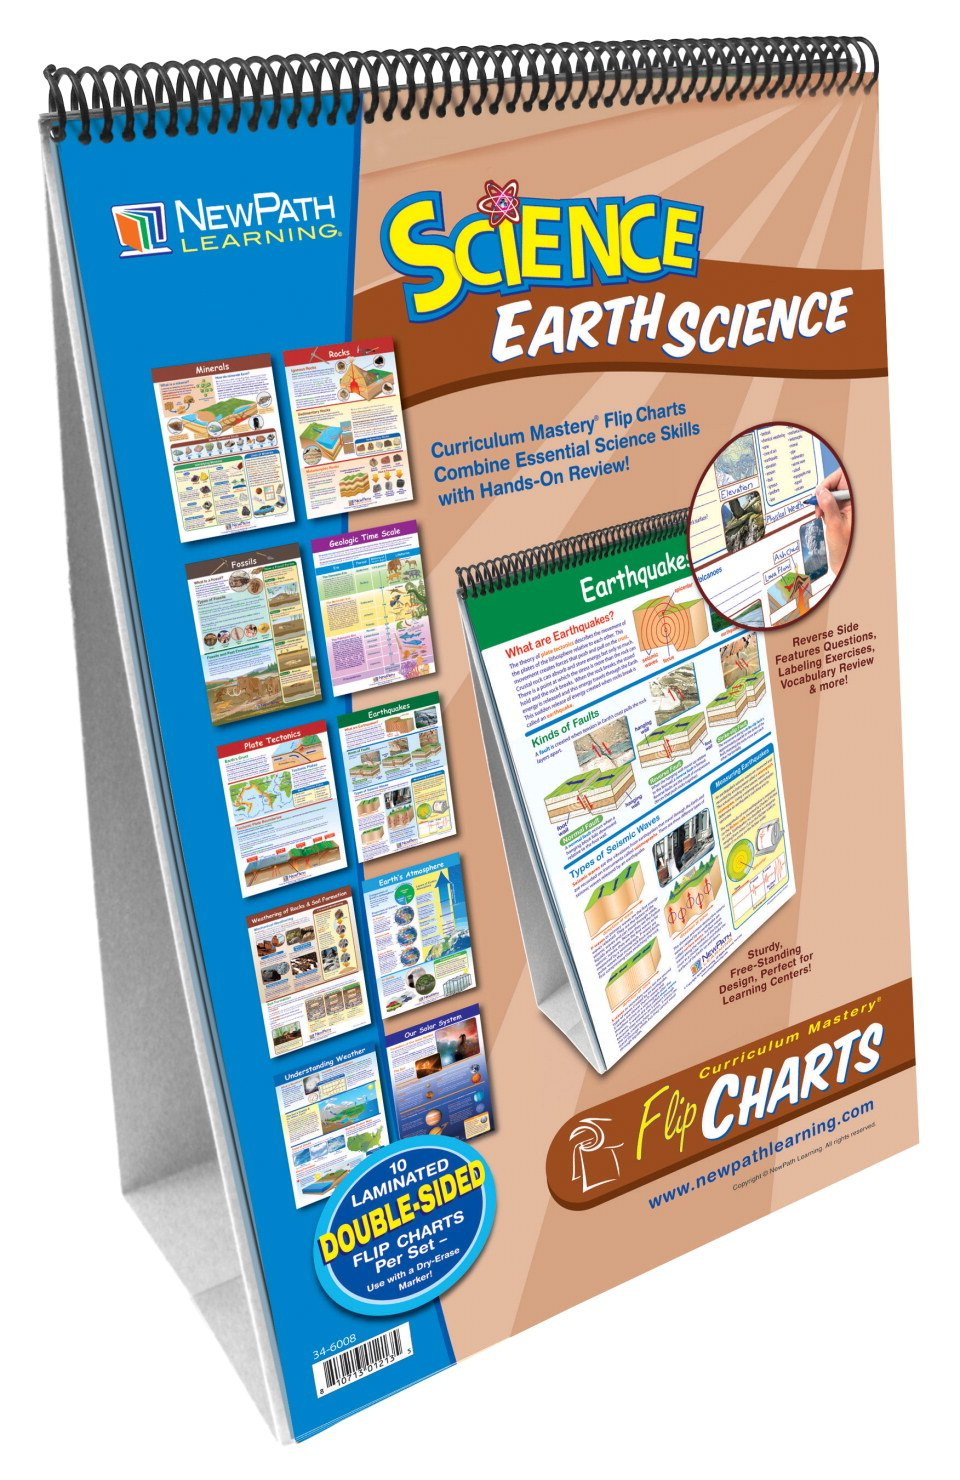 Newpath Learning Curriculum Mastery Earth Science Flip Charts by New Path